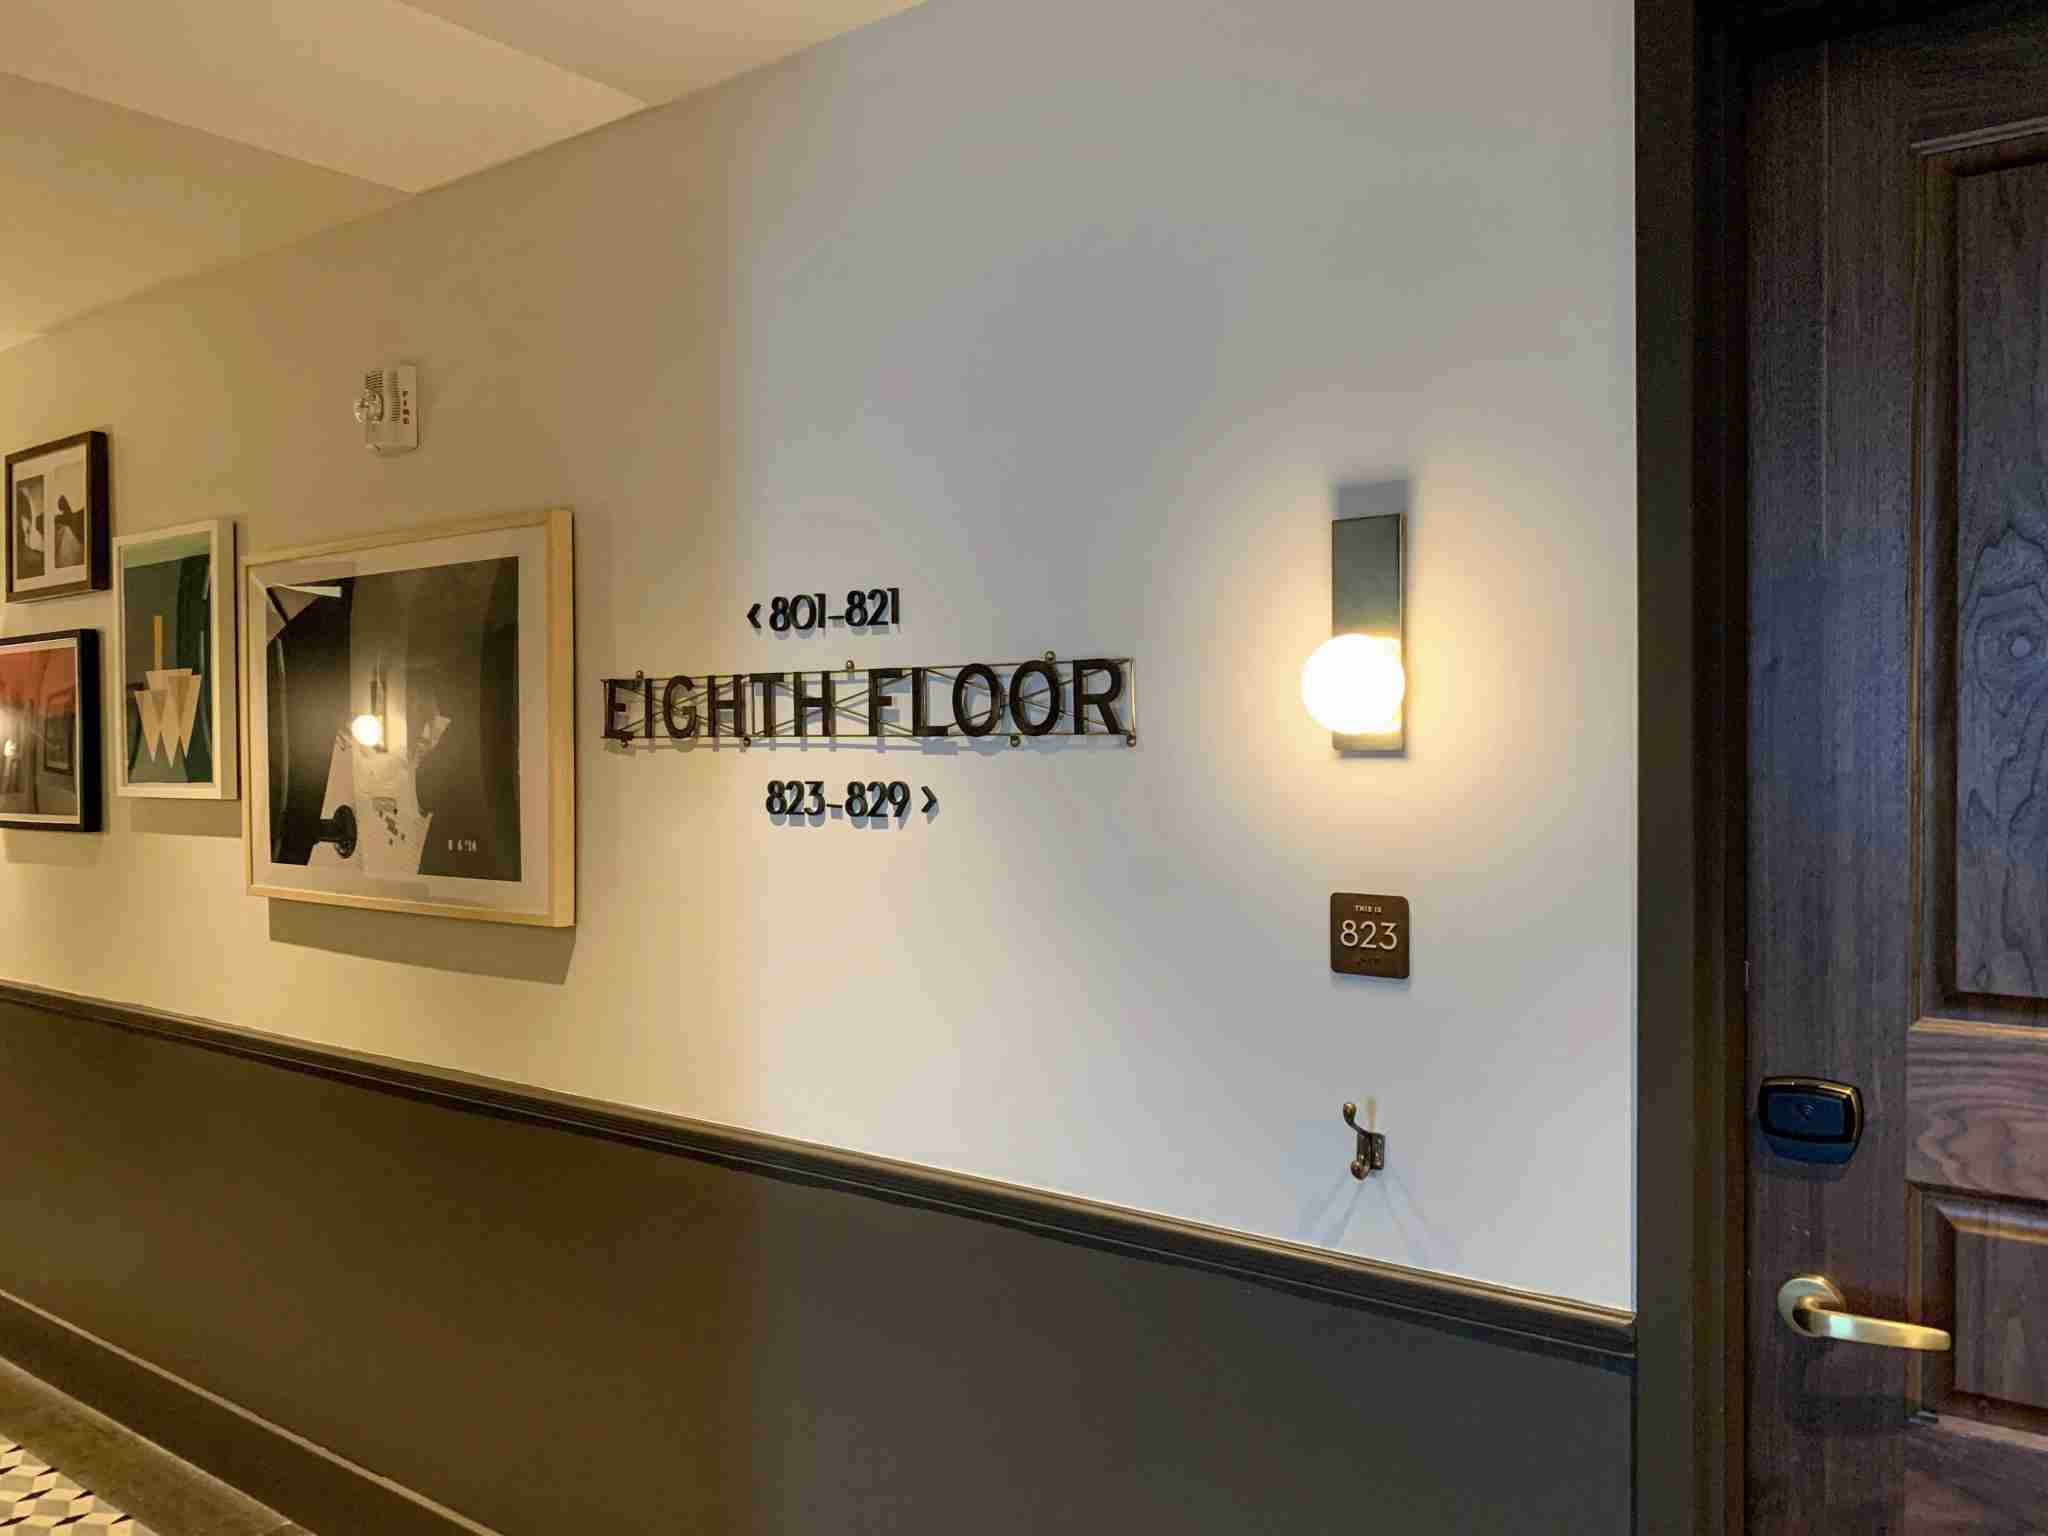 Welcome to the Eighth Floor